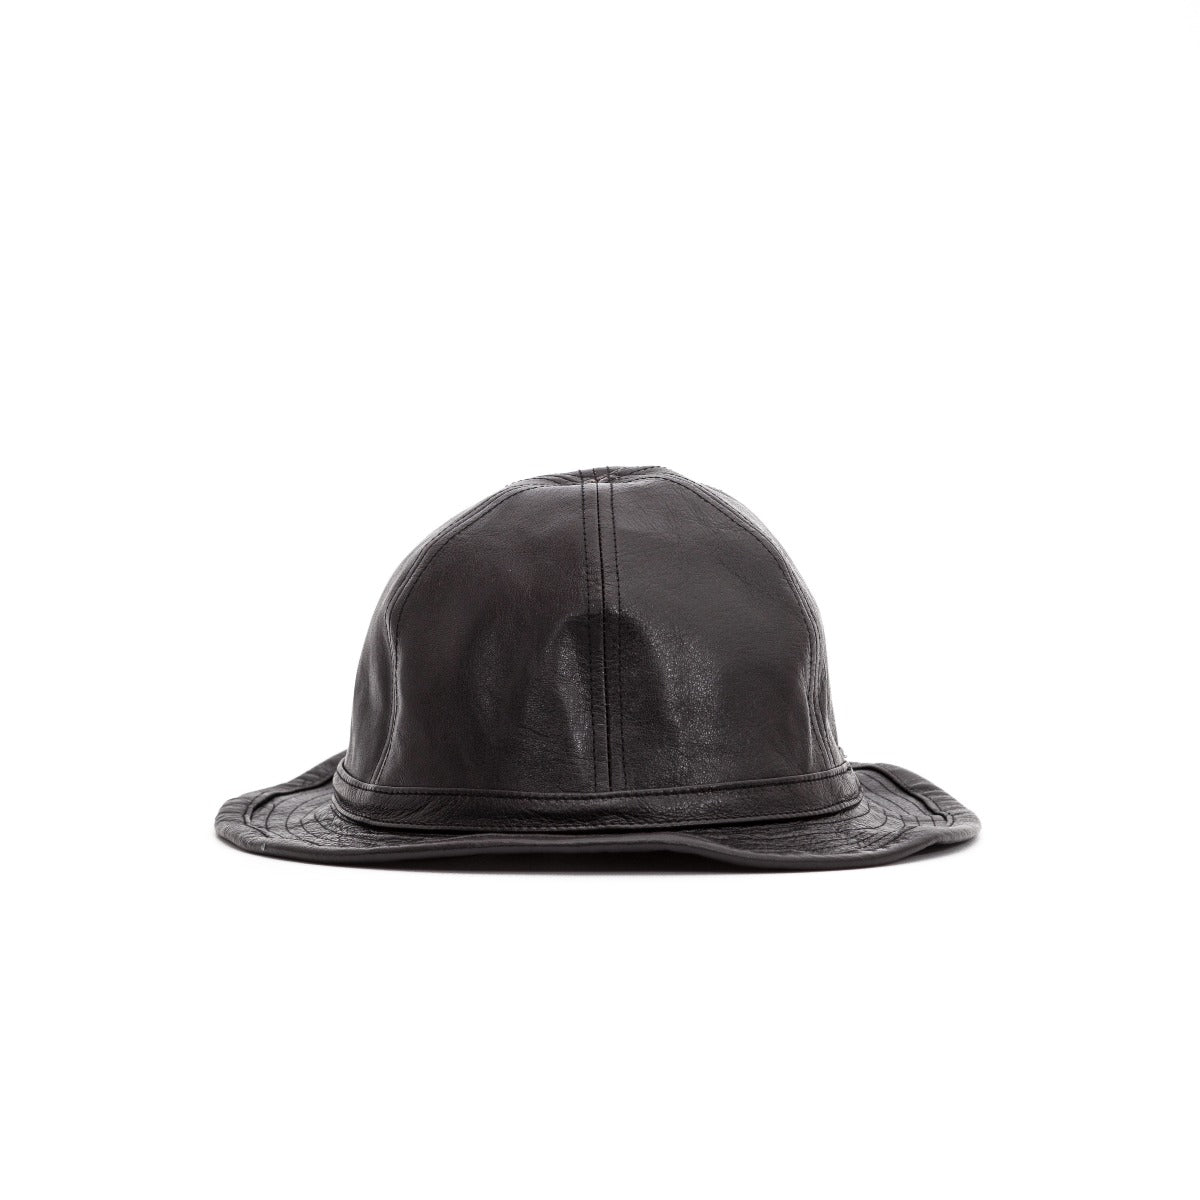 The Real McCoy's Joe McCoy Leather Hunting Hat